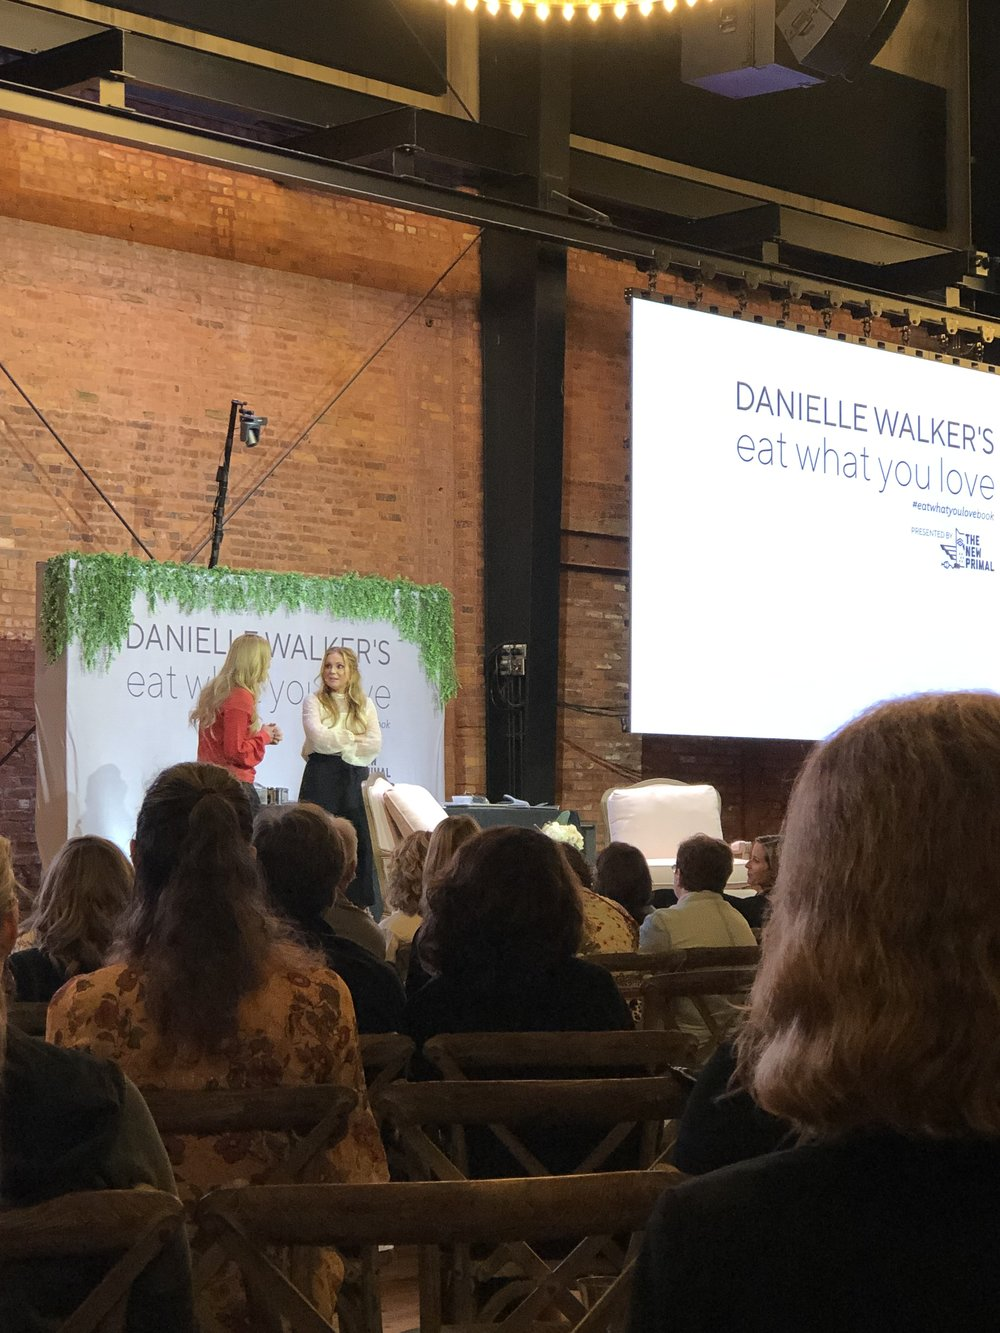 Danielle Walker and Angie Smith — how great is this venue though?!